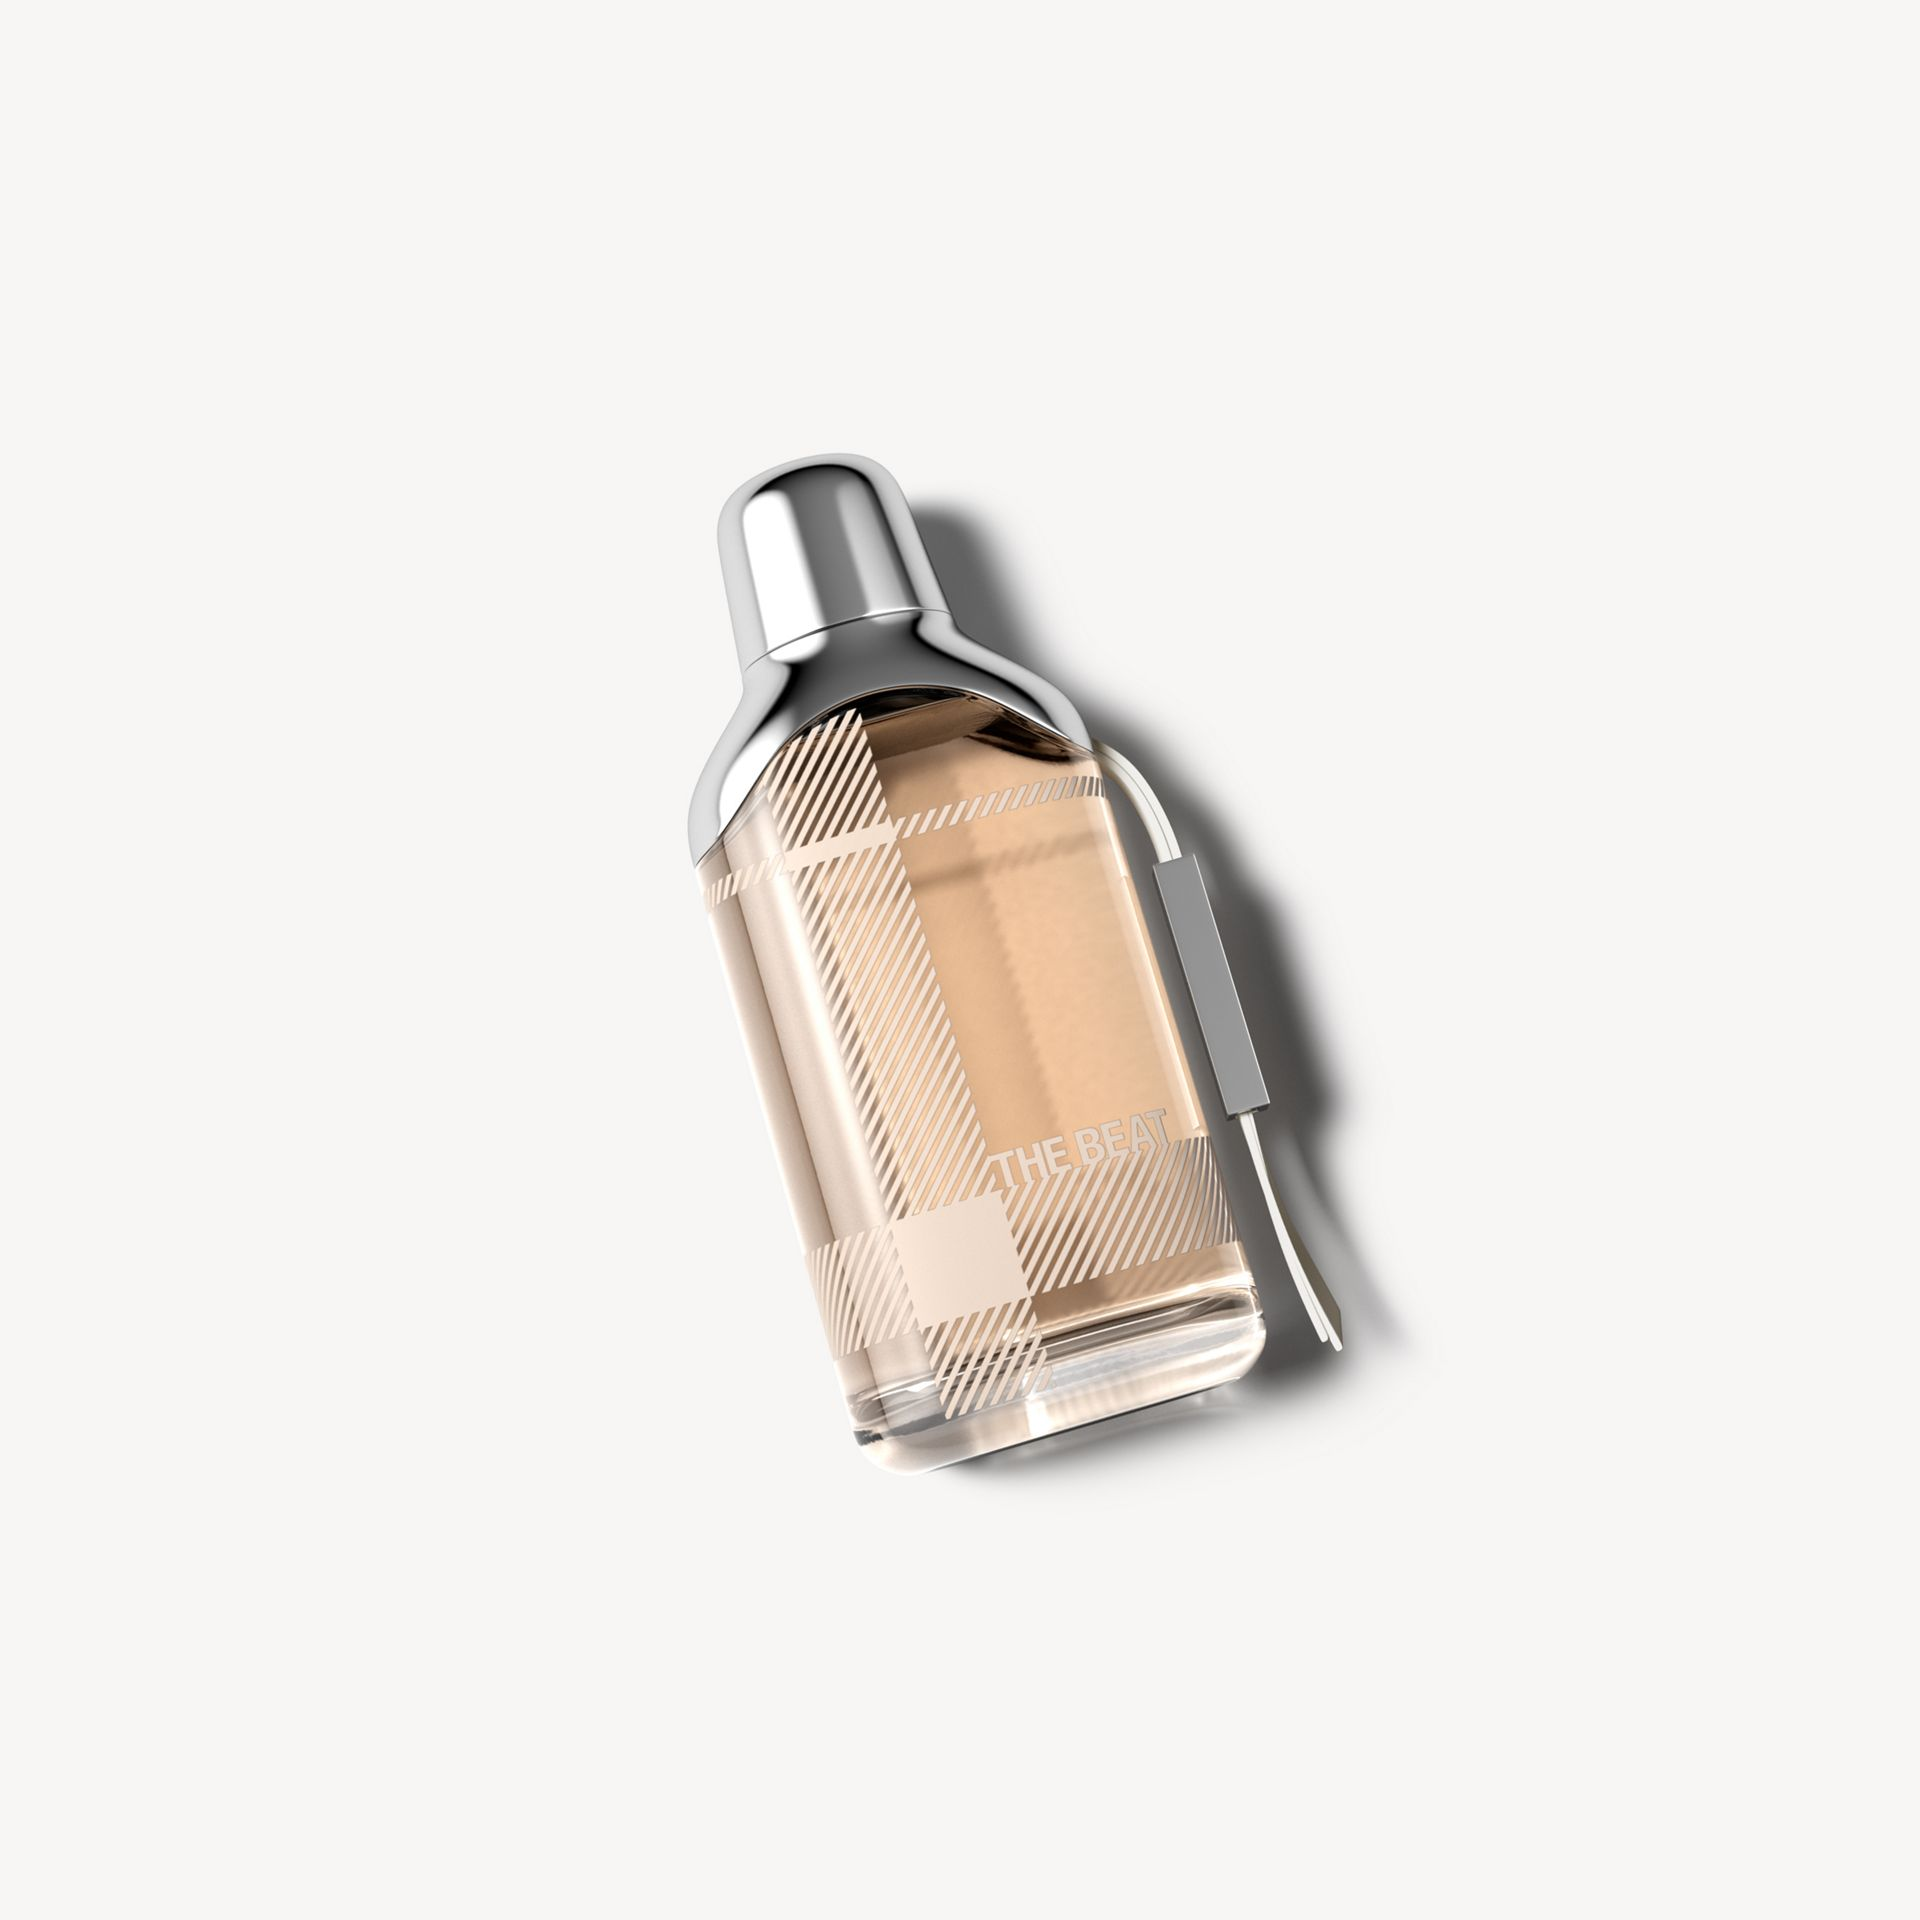 Burberry The Beat Eau de Parfum 50ml - Women | Burberry Hong Kong - gallery image 1